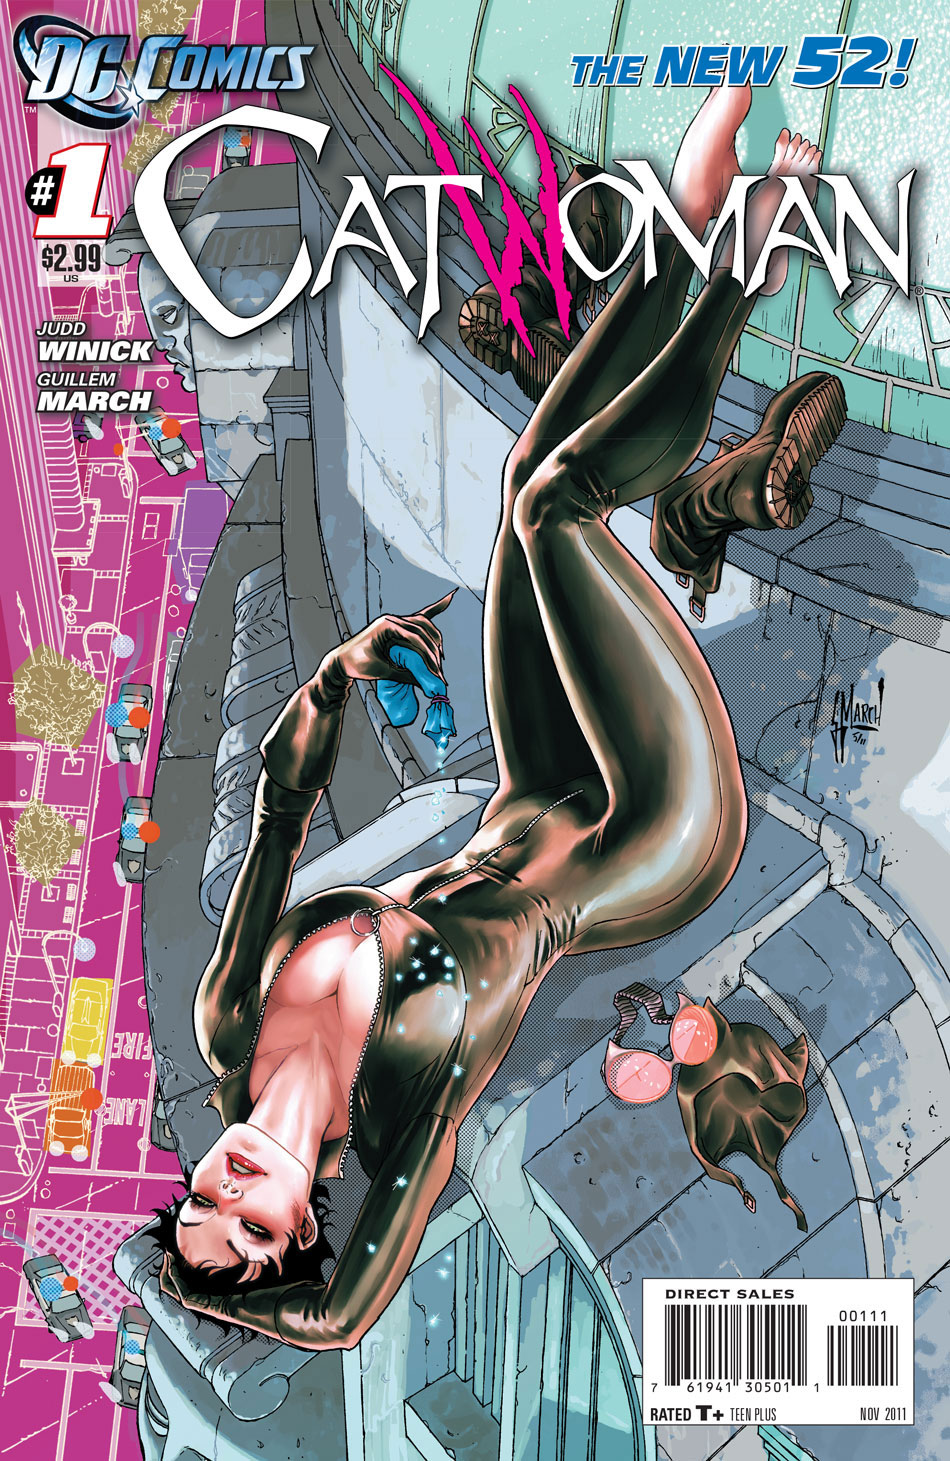 Catwoman #1 Cover